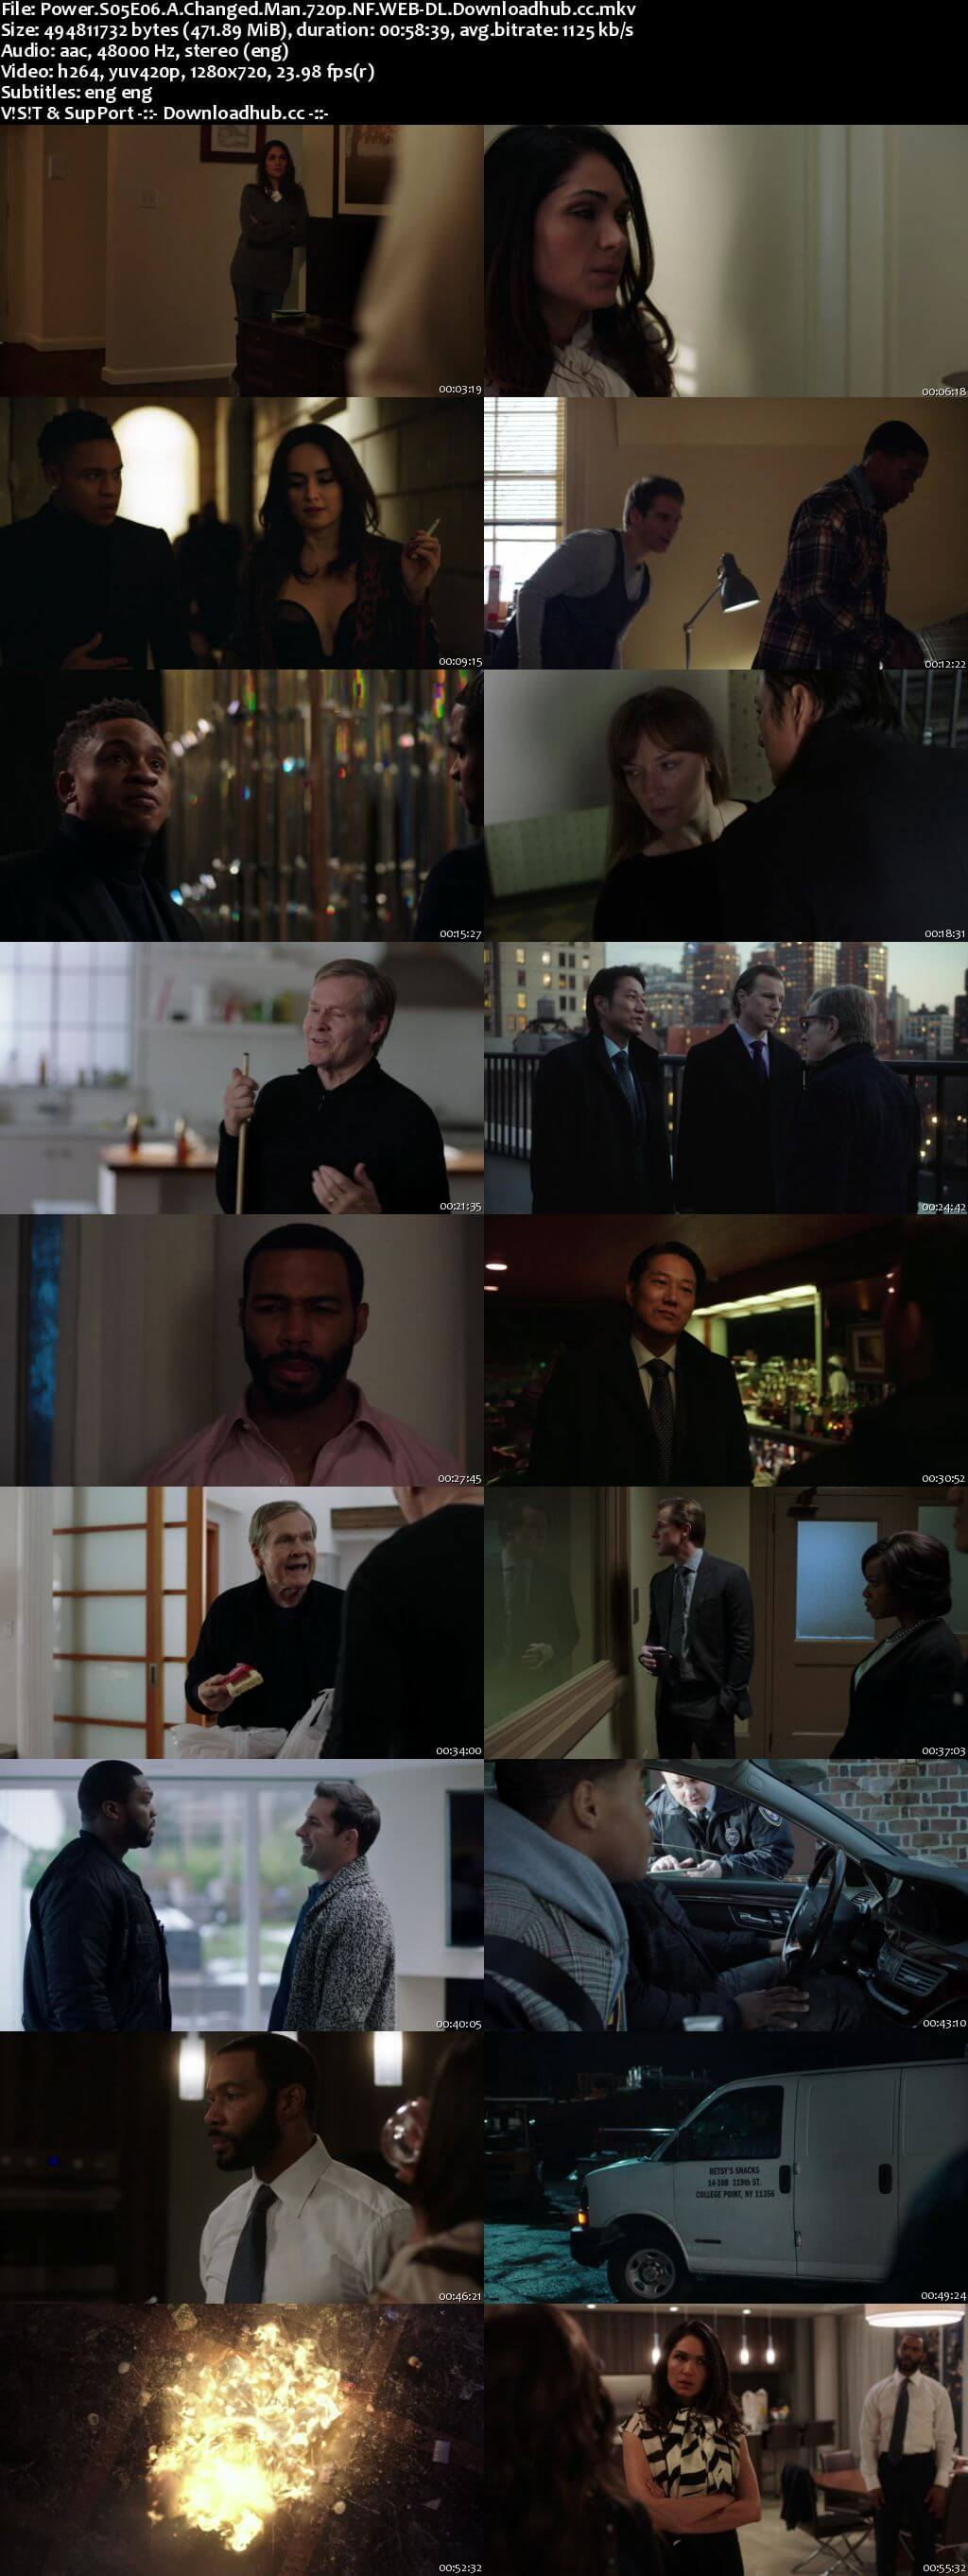 Power S05E06 450MB WEB-DL 720p x264 ESubs